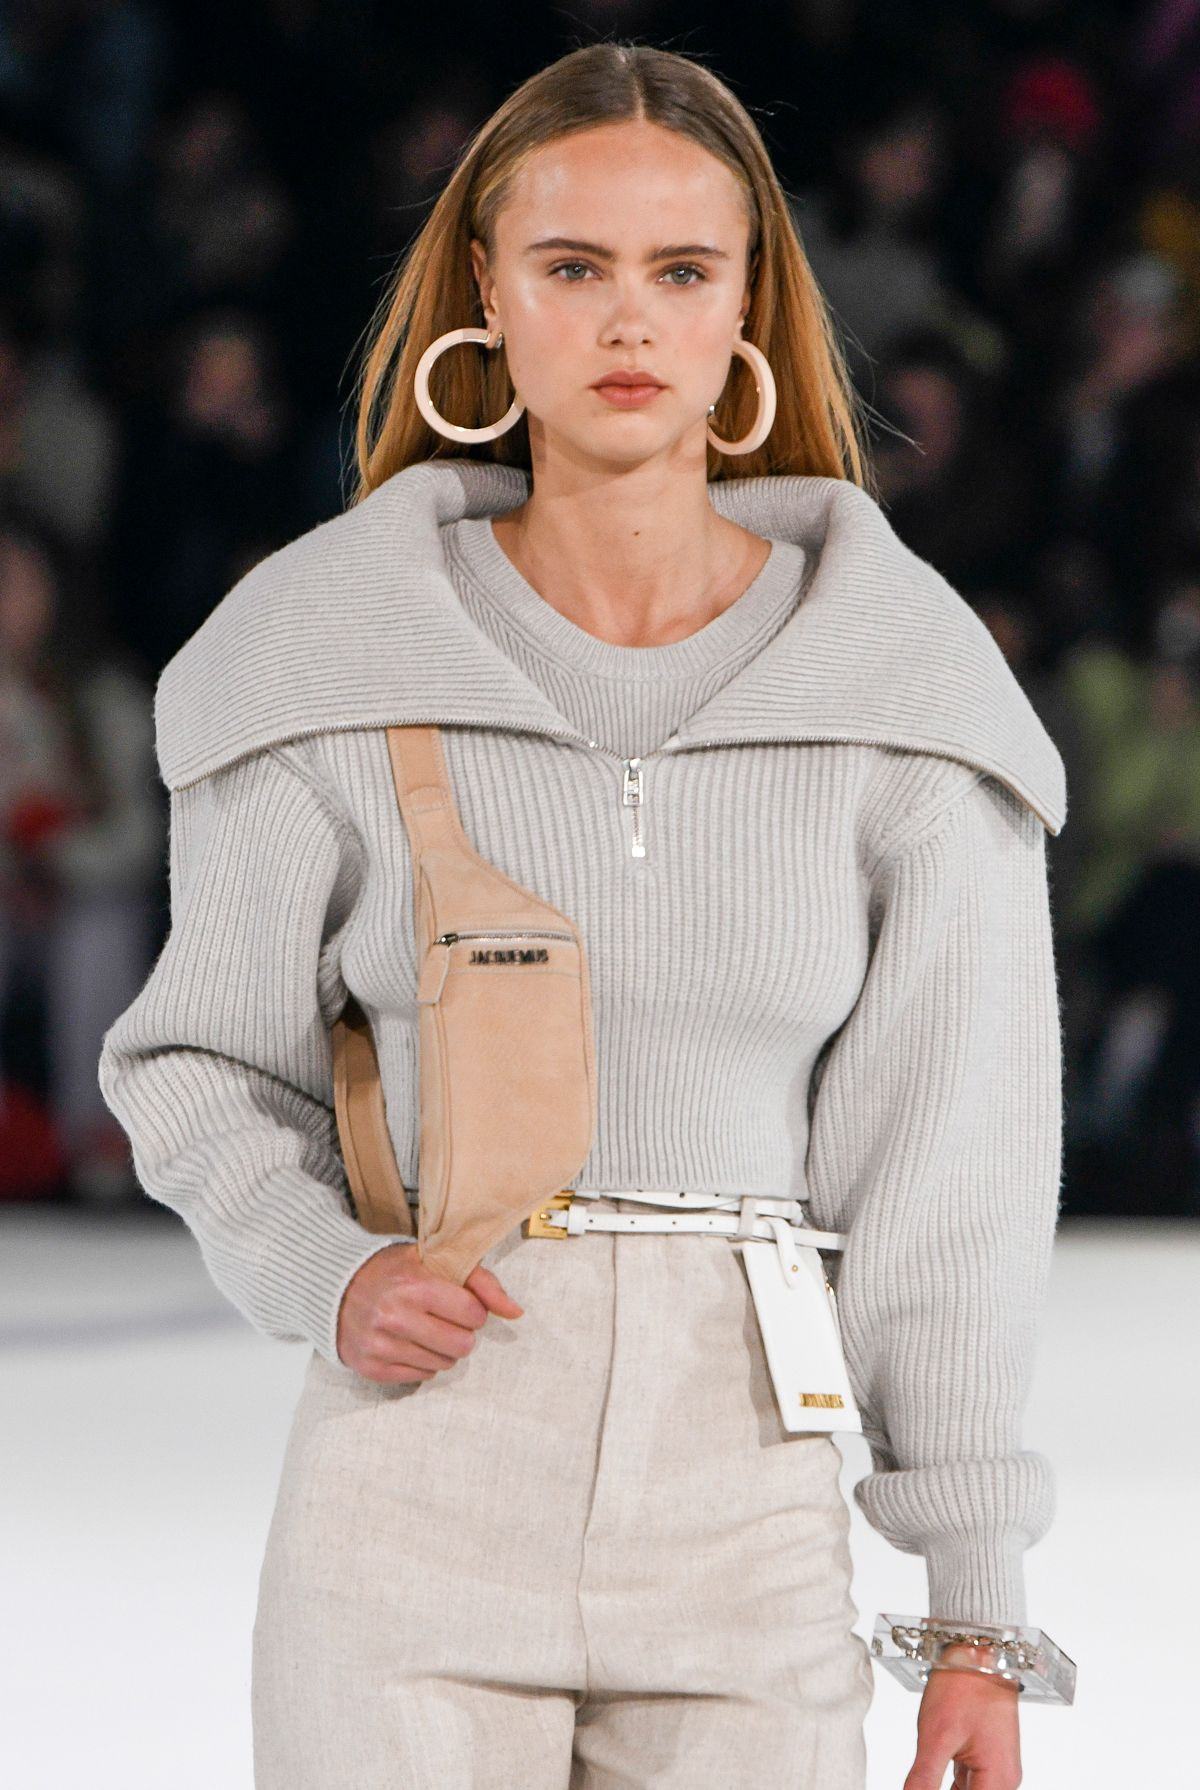 6 Things I Want to Buy In 2020 Thanks to the Epic Jacquemus Show